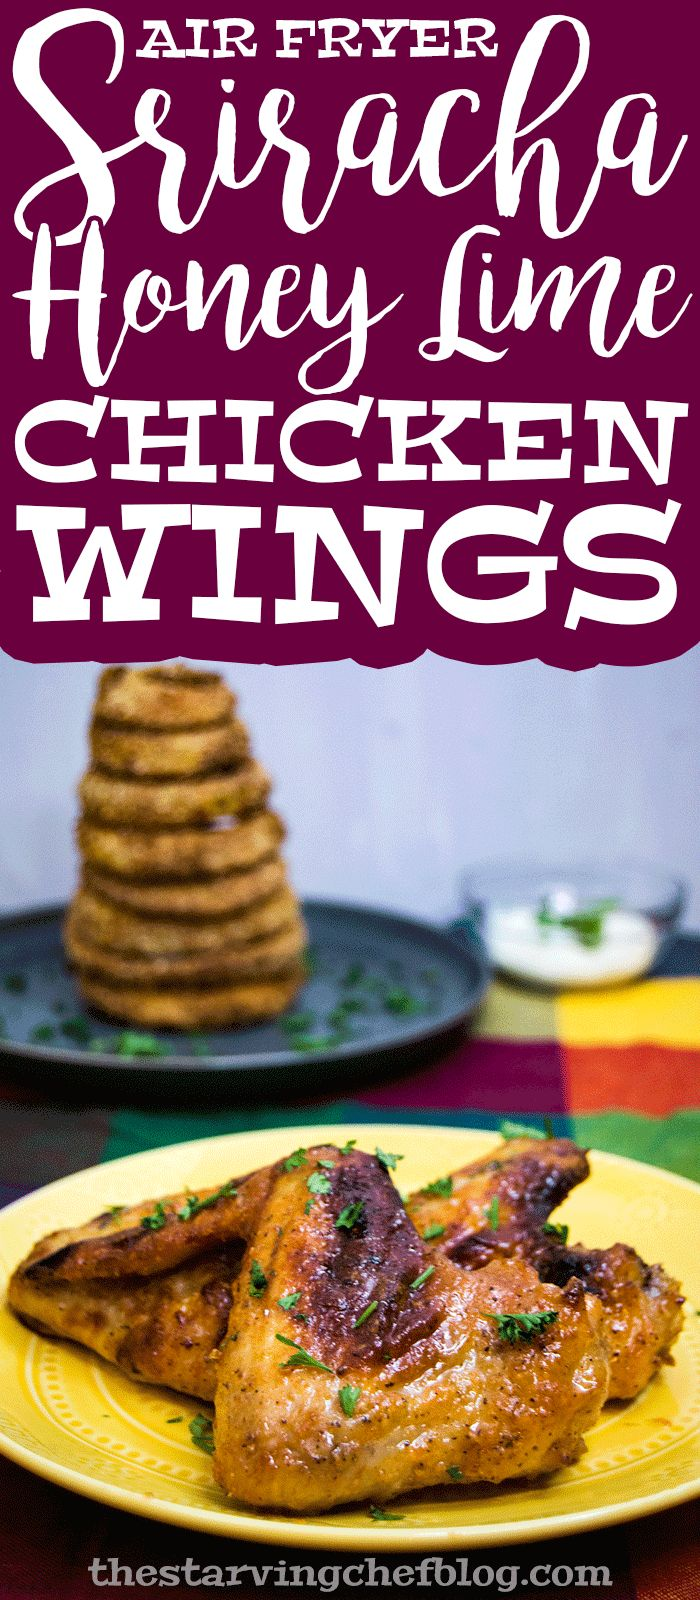 The Starving Chef | Air fryer sriracha, honey & lime chicken wings - perfect for game day!